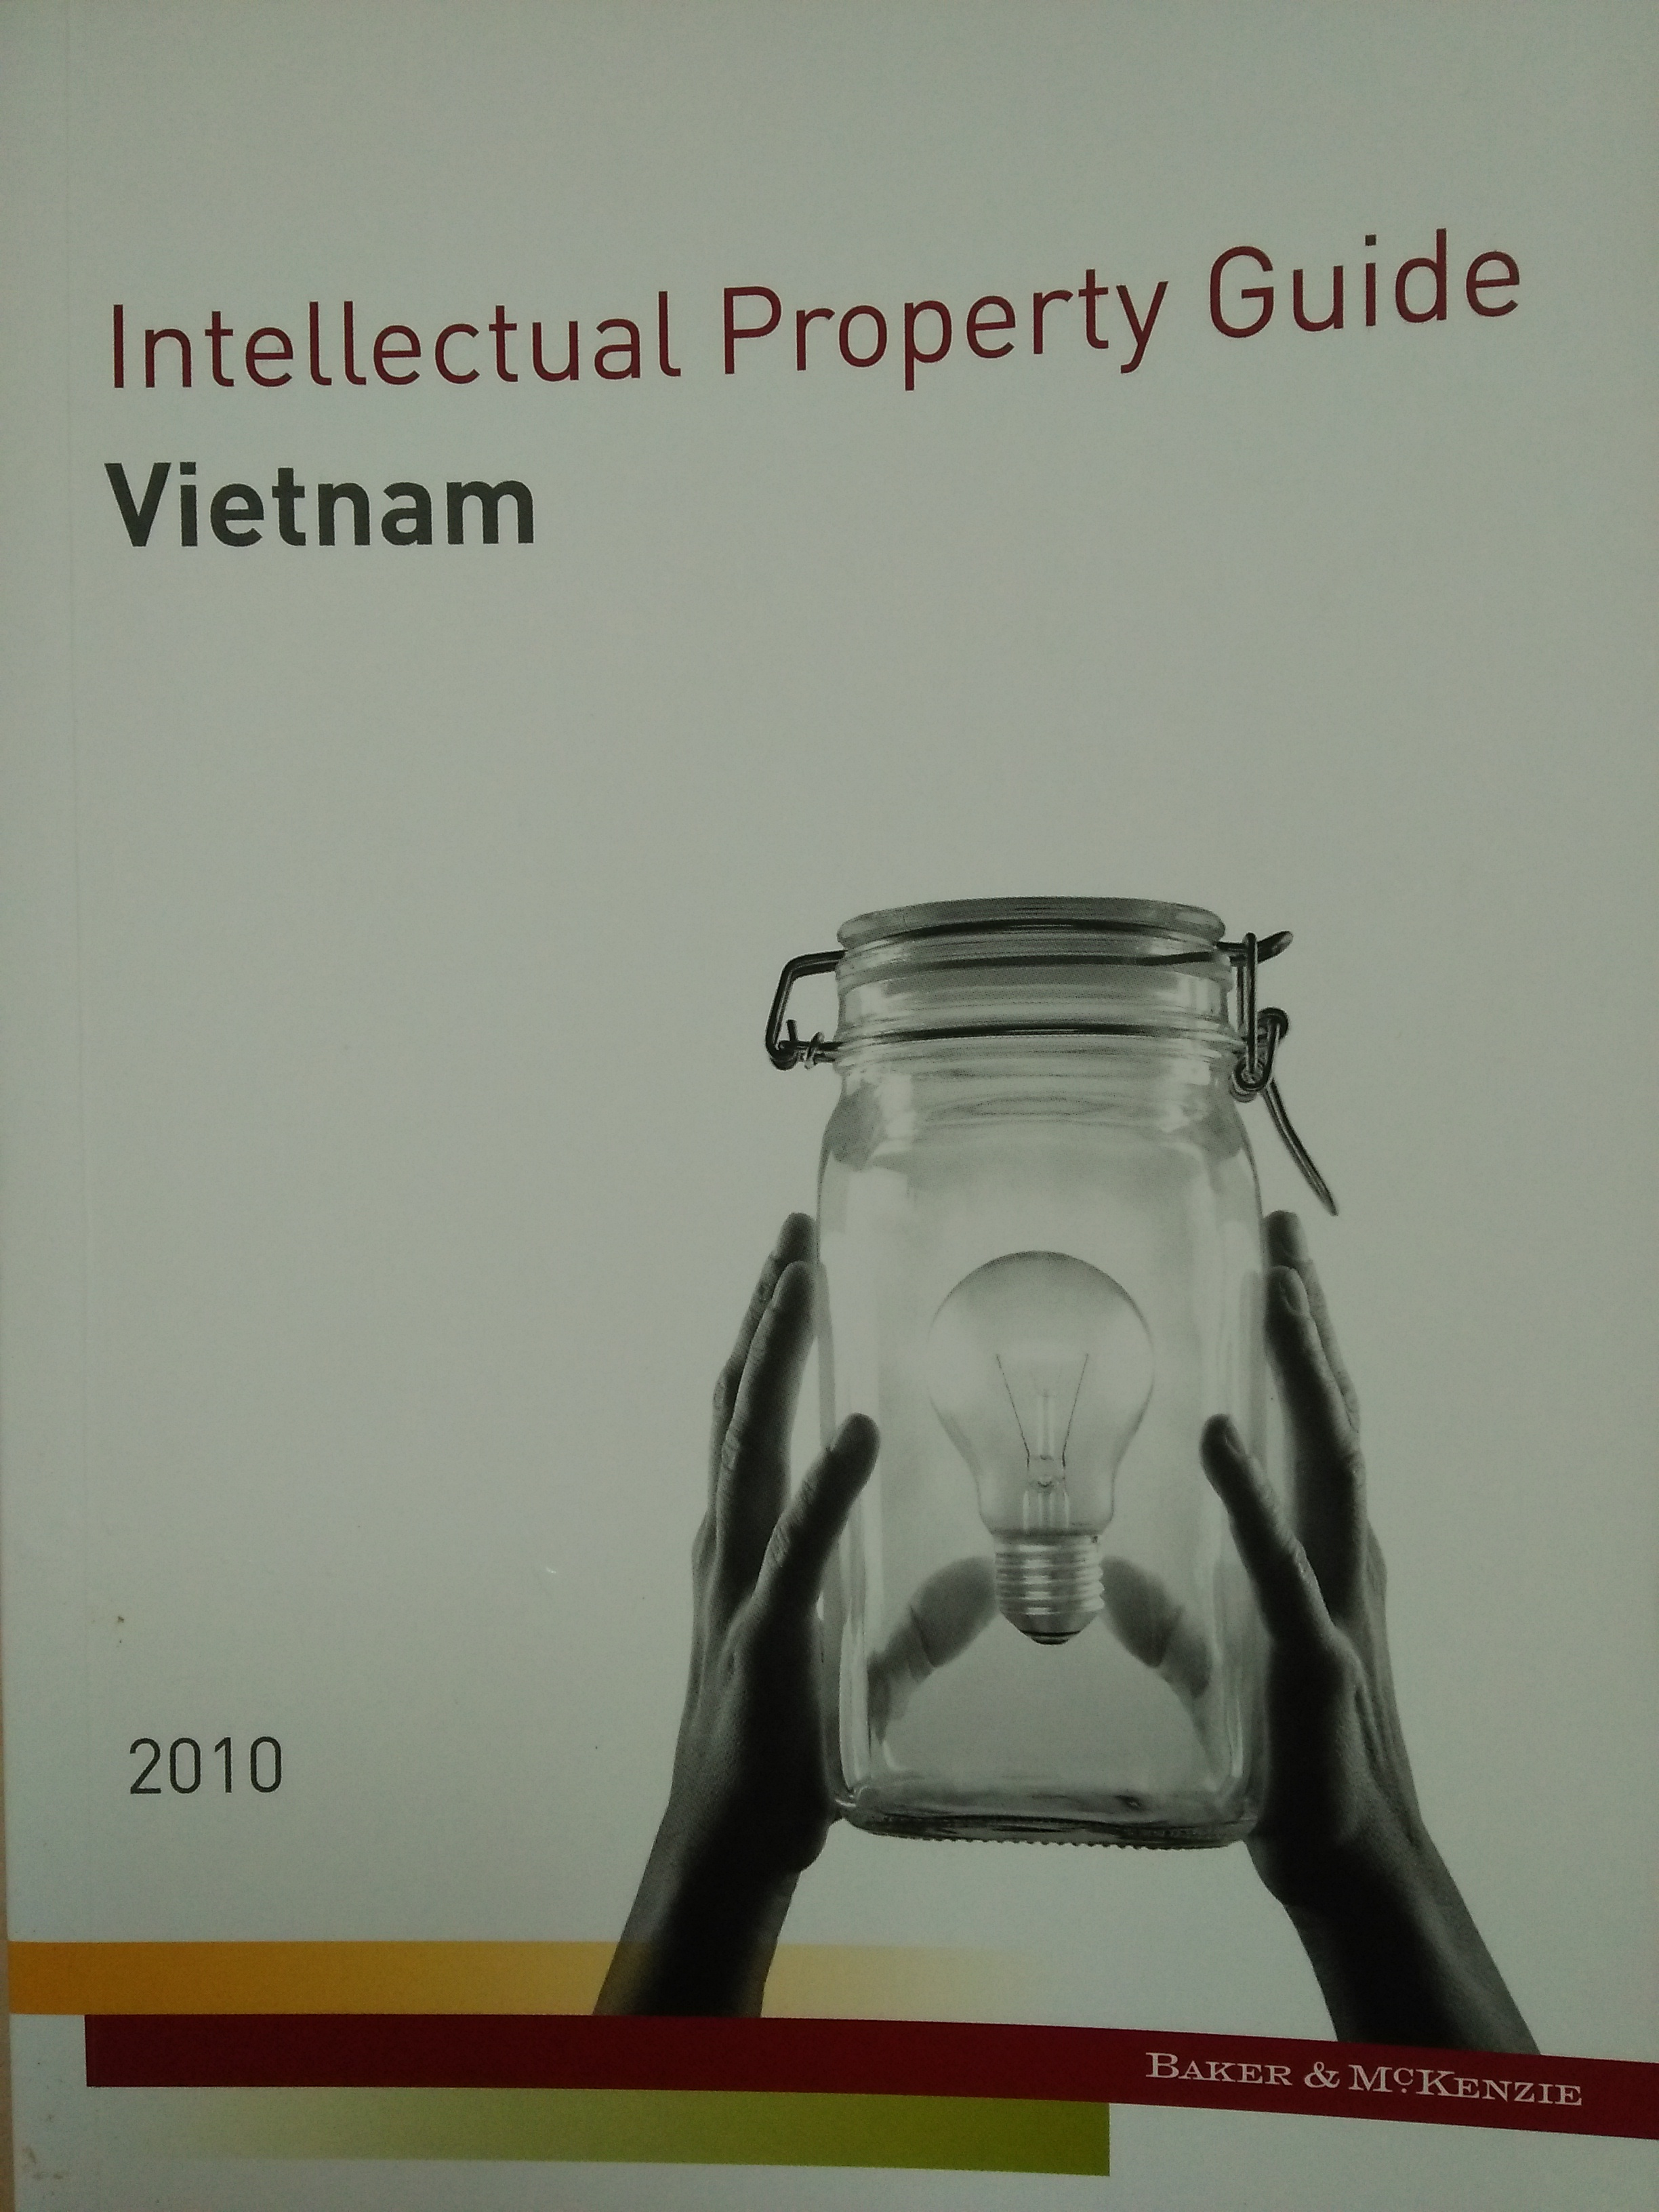 Intellectual Property Guide in Vietnam